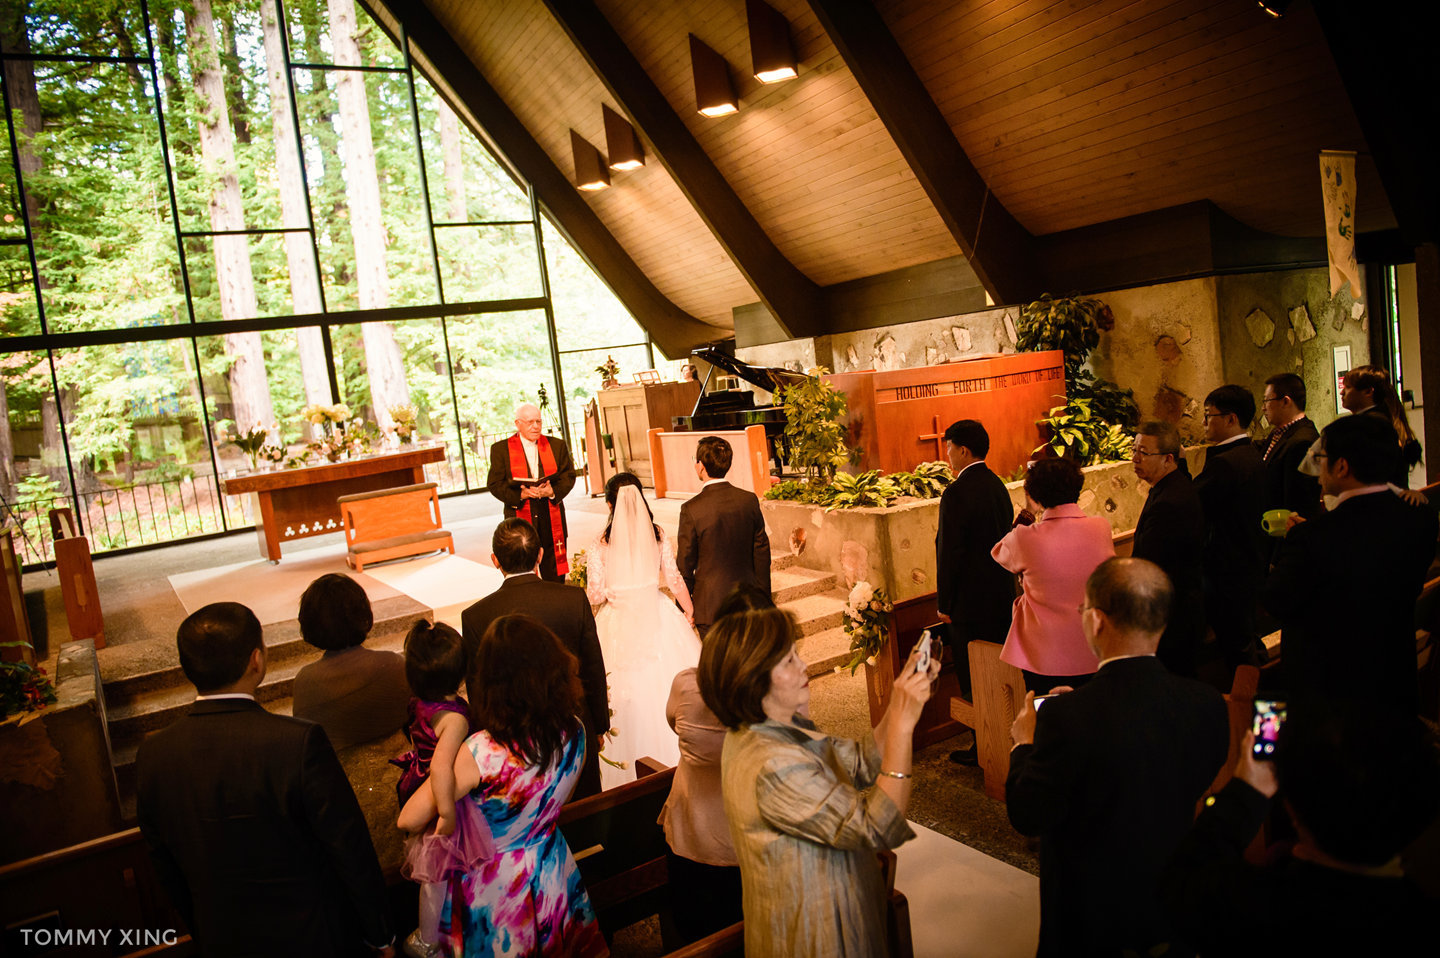 San Francisco Wedding Photography Valley Presbyterian Church WEDDING Tommy Xing Photography 洛杉矶旧金山婚礼婚纱照摄影师073.jpg